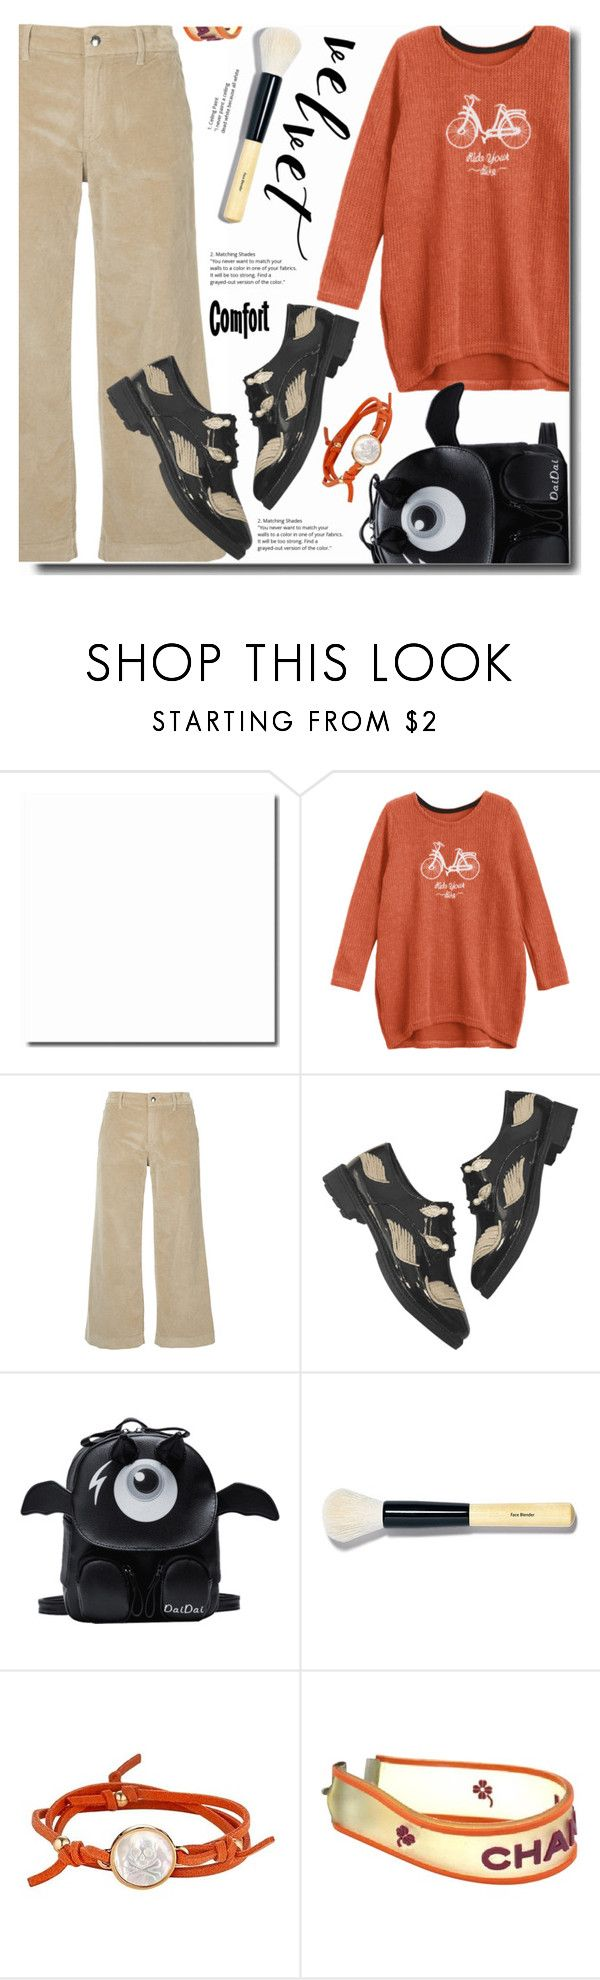 """""""Comfor combo outfit"""" by soks ❤ liked on Polyvore featuring The Seafarer, Bobbi Brown Cosmetics, Asha by ADM and Chanel"""